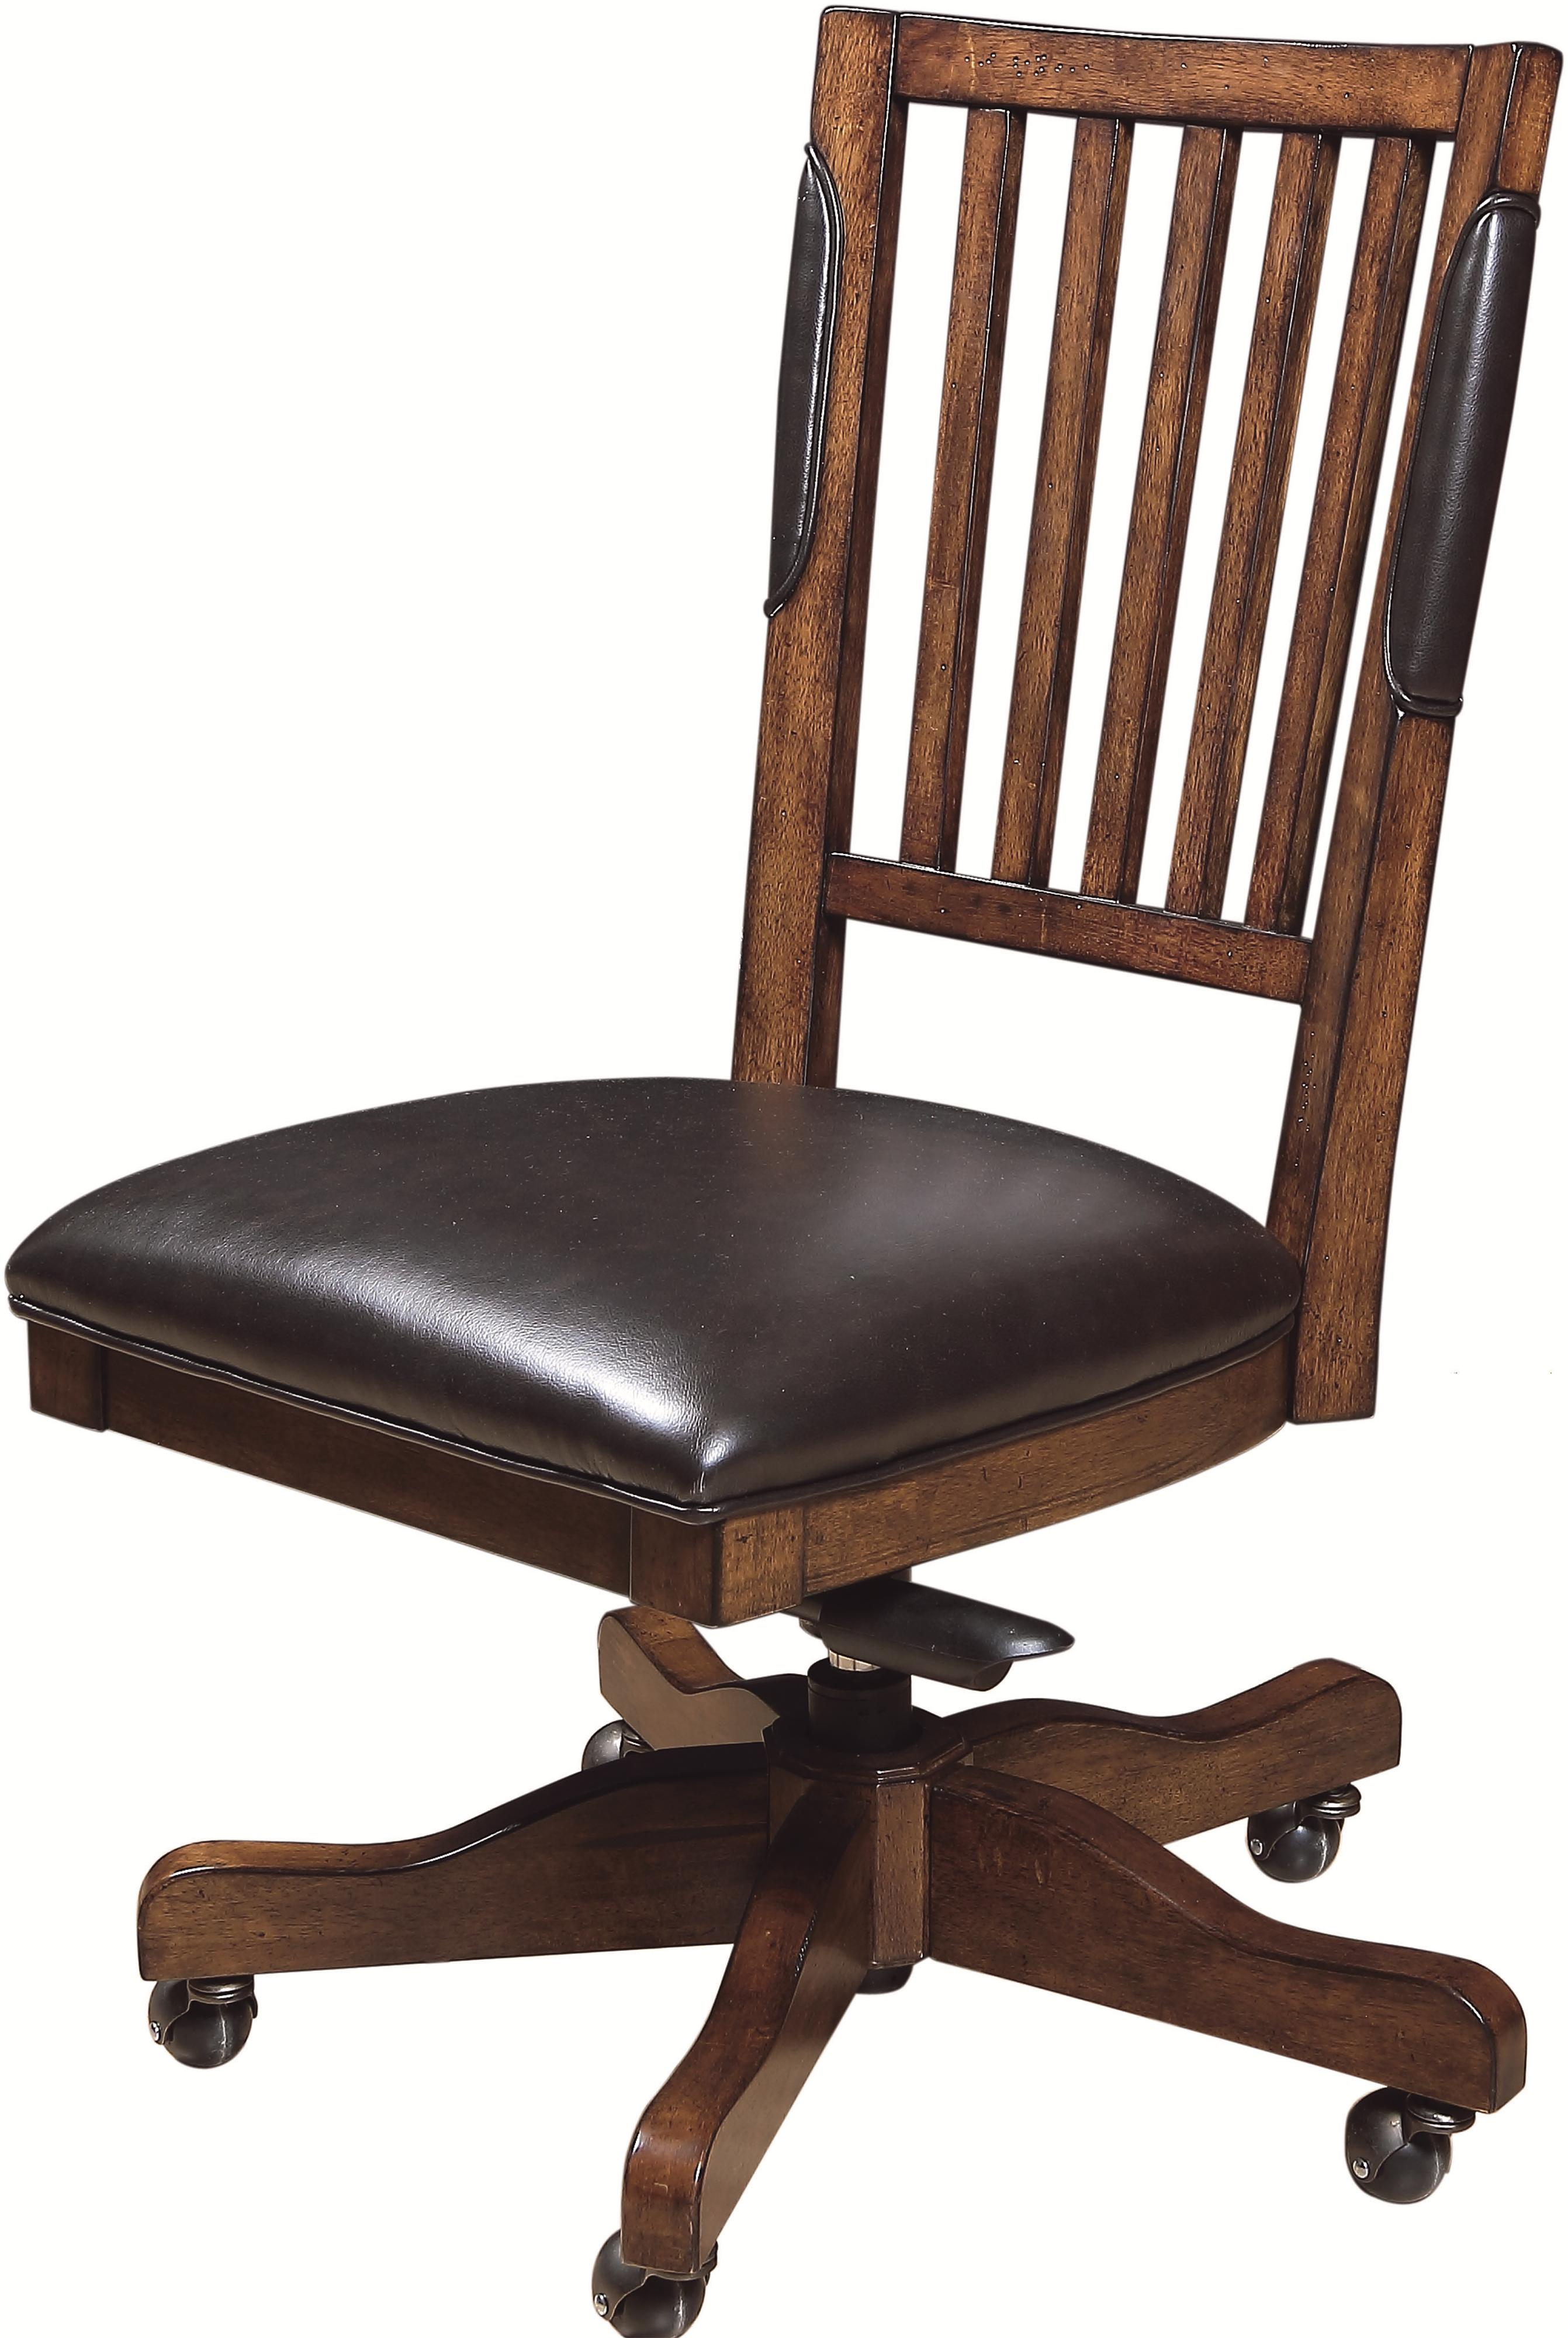 Morris Home Furnishings Ironton Ironton Desk Chair - Item Number: I20-366-CHY